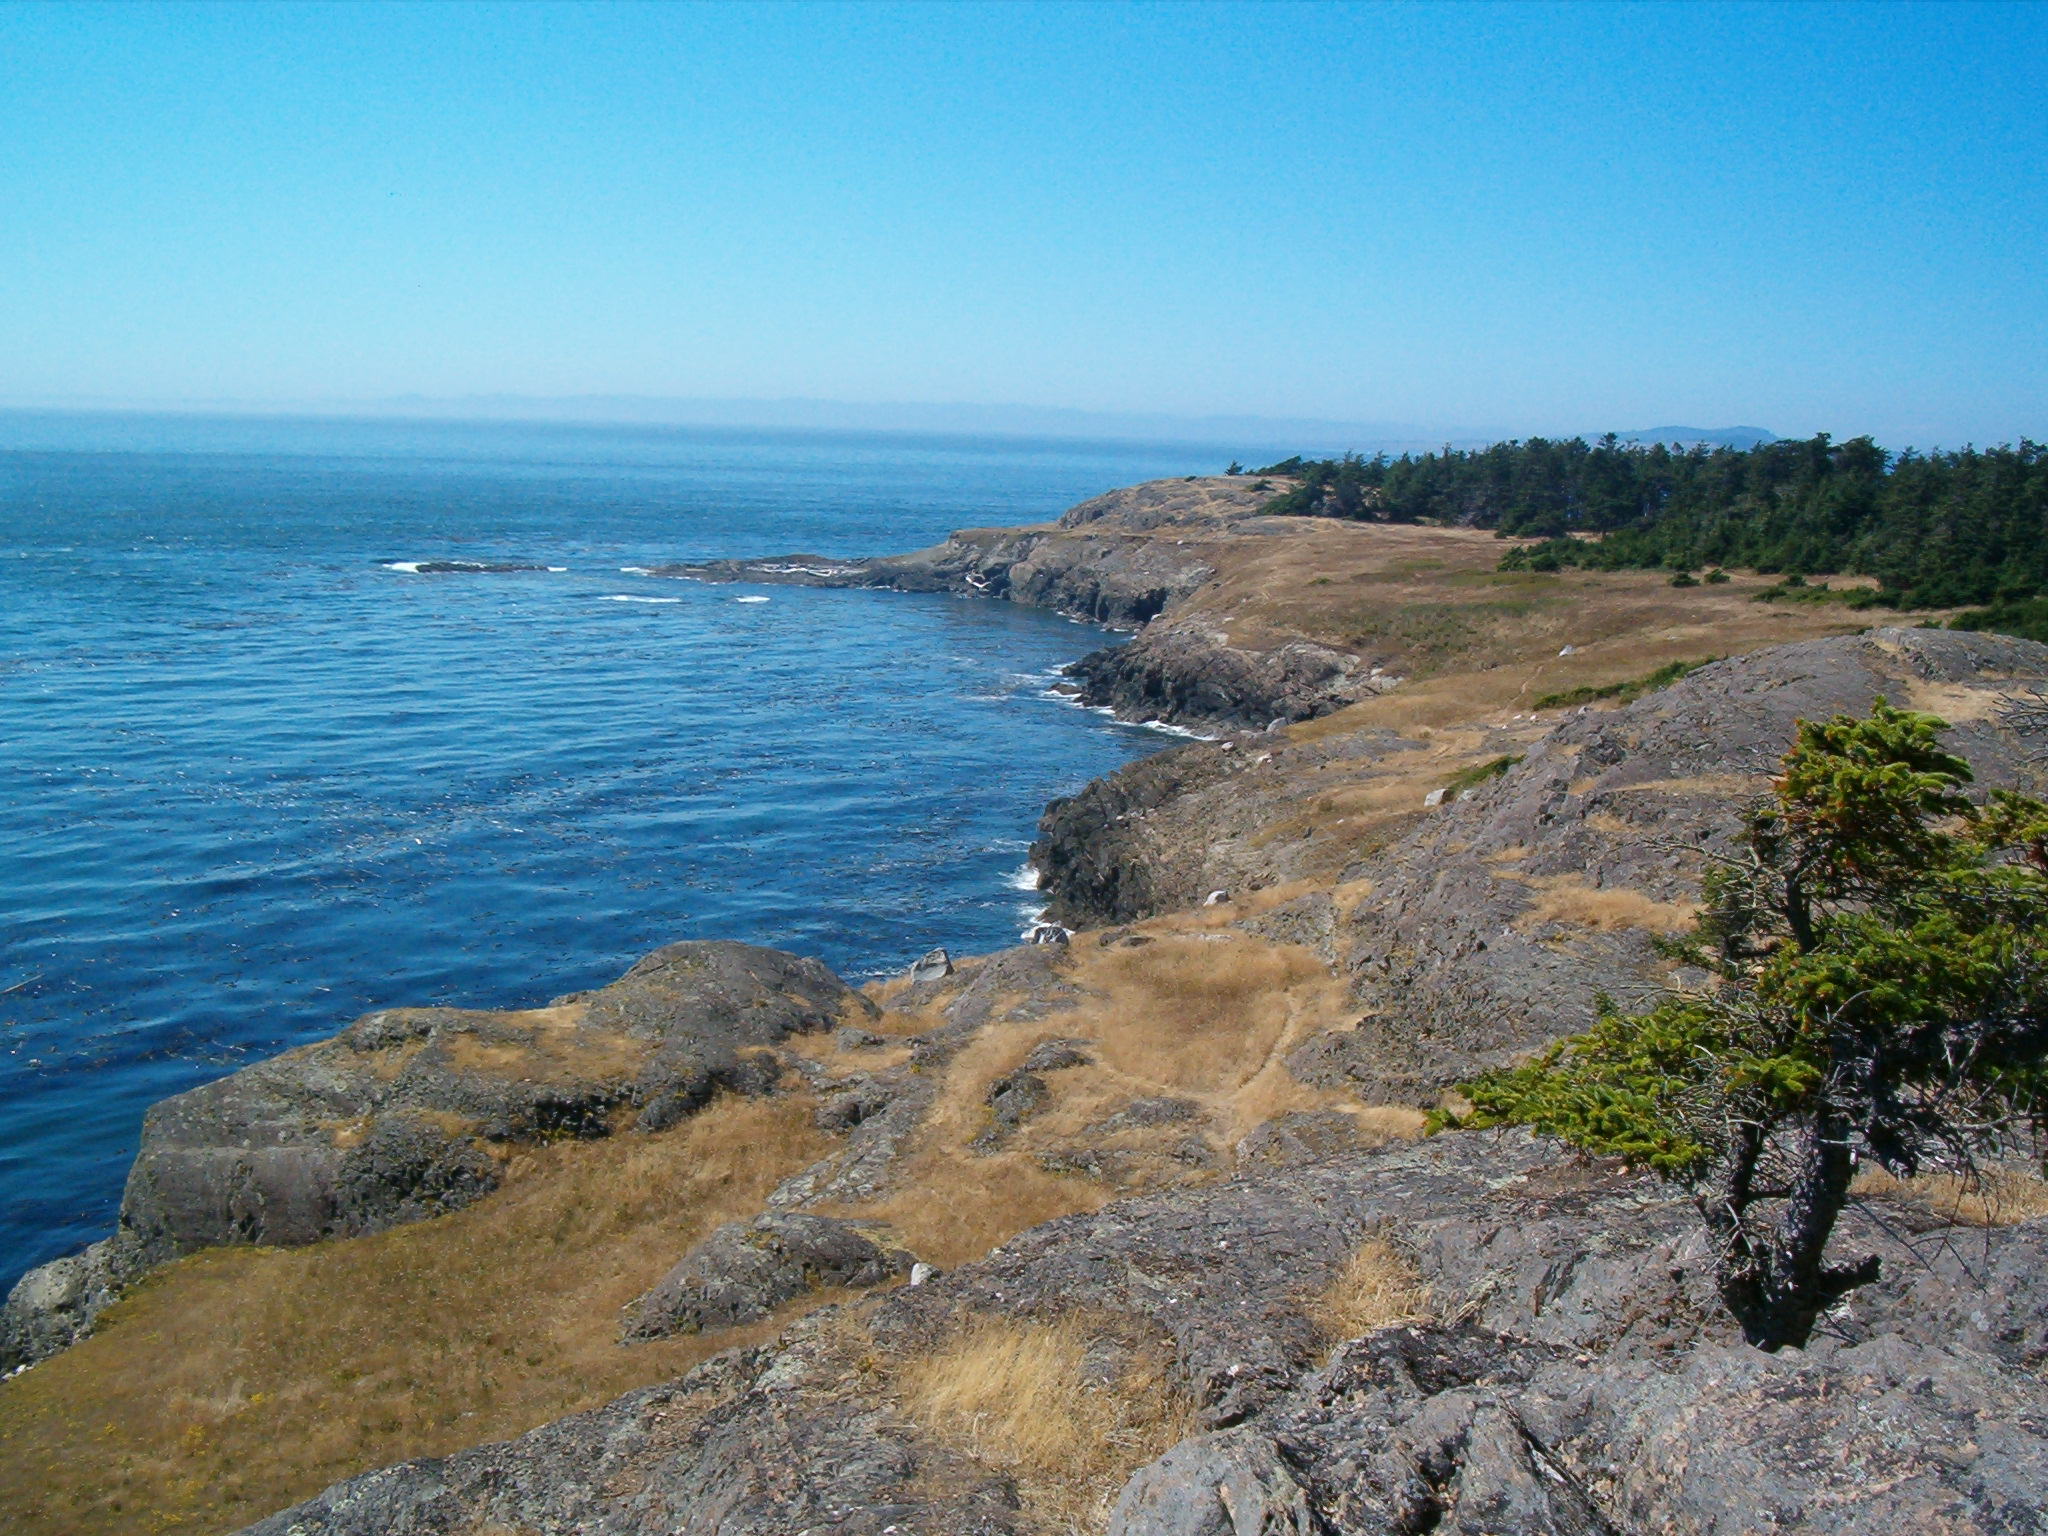 Lopez Island, one of the San Juan Islands, Washington / CC BY-SA 3.0